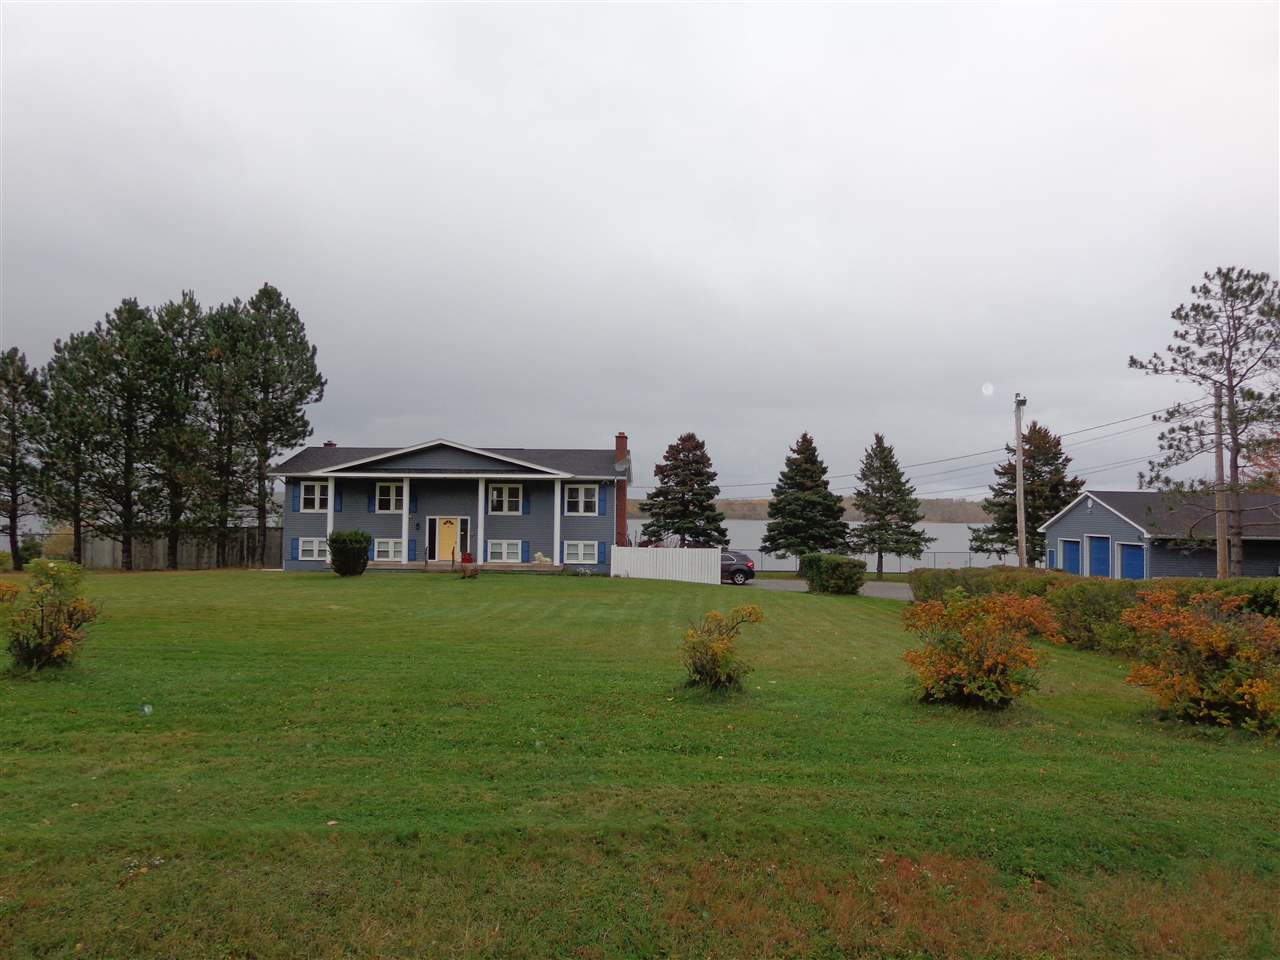 Main Photo: 1890 Abercrombie Road in Abercrombie: 108-Rural Pictou County Residential for sale (Northern Region)  : MLS®# 202009003